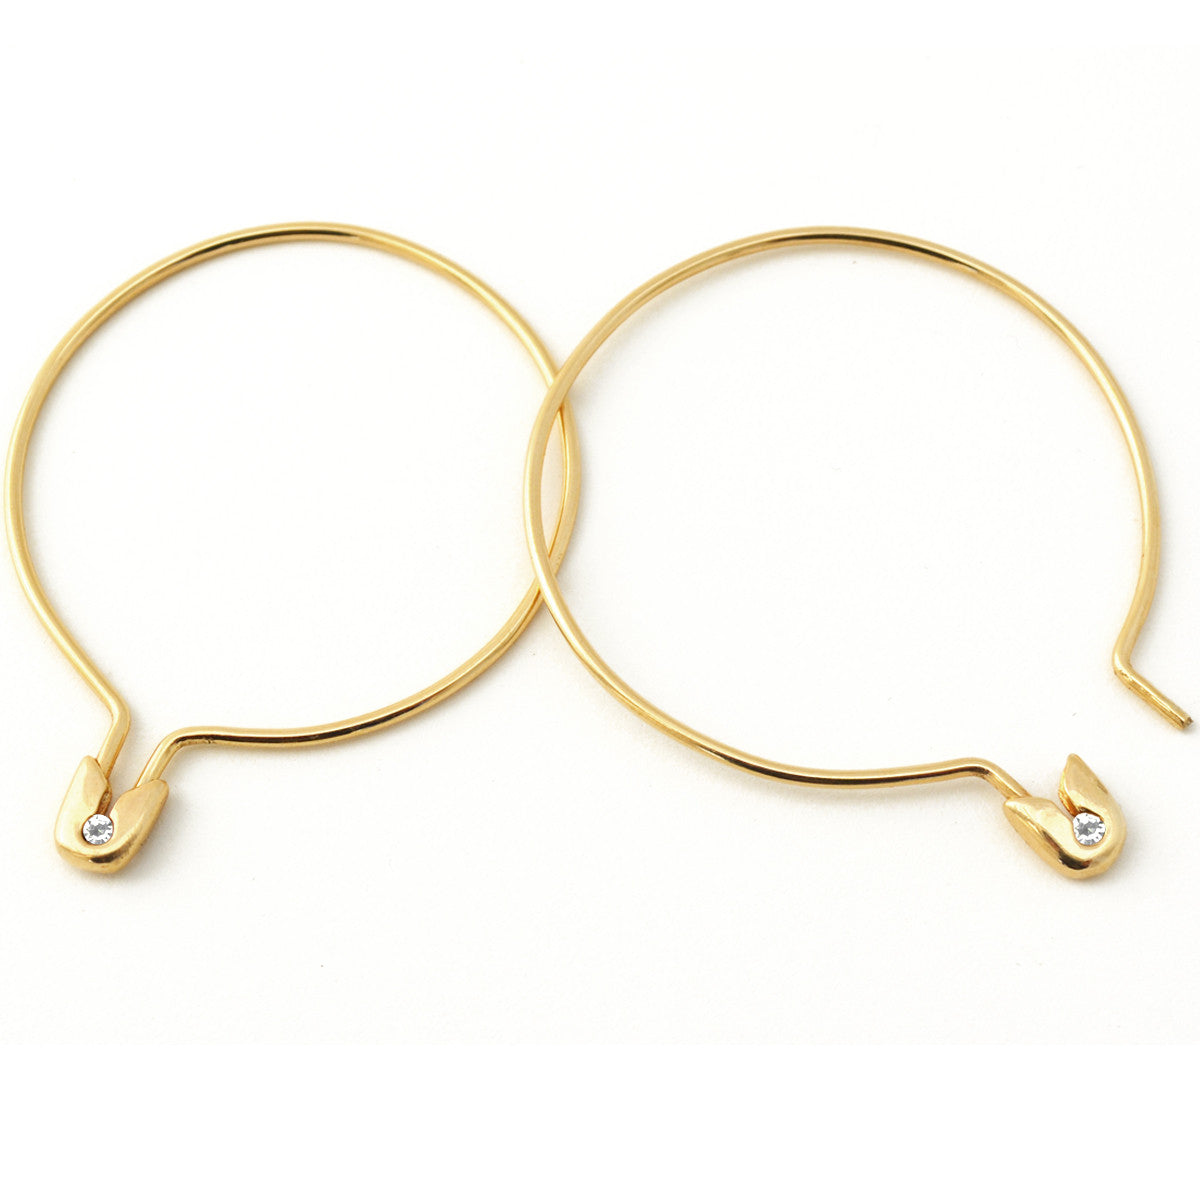 14k Gold Diamond Safety Pin Hoop Earring Large - PAIR